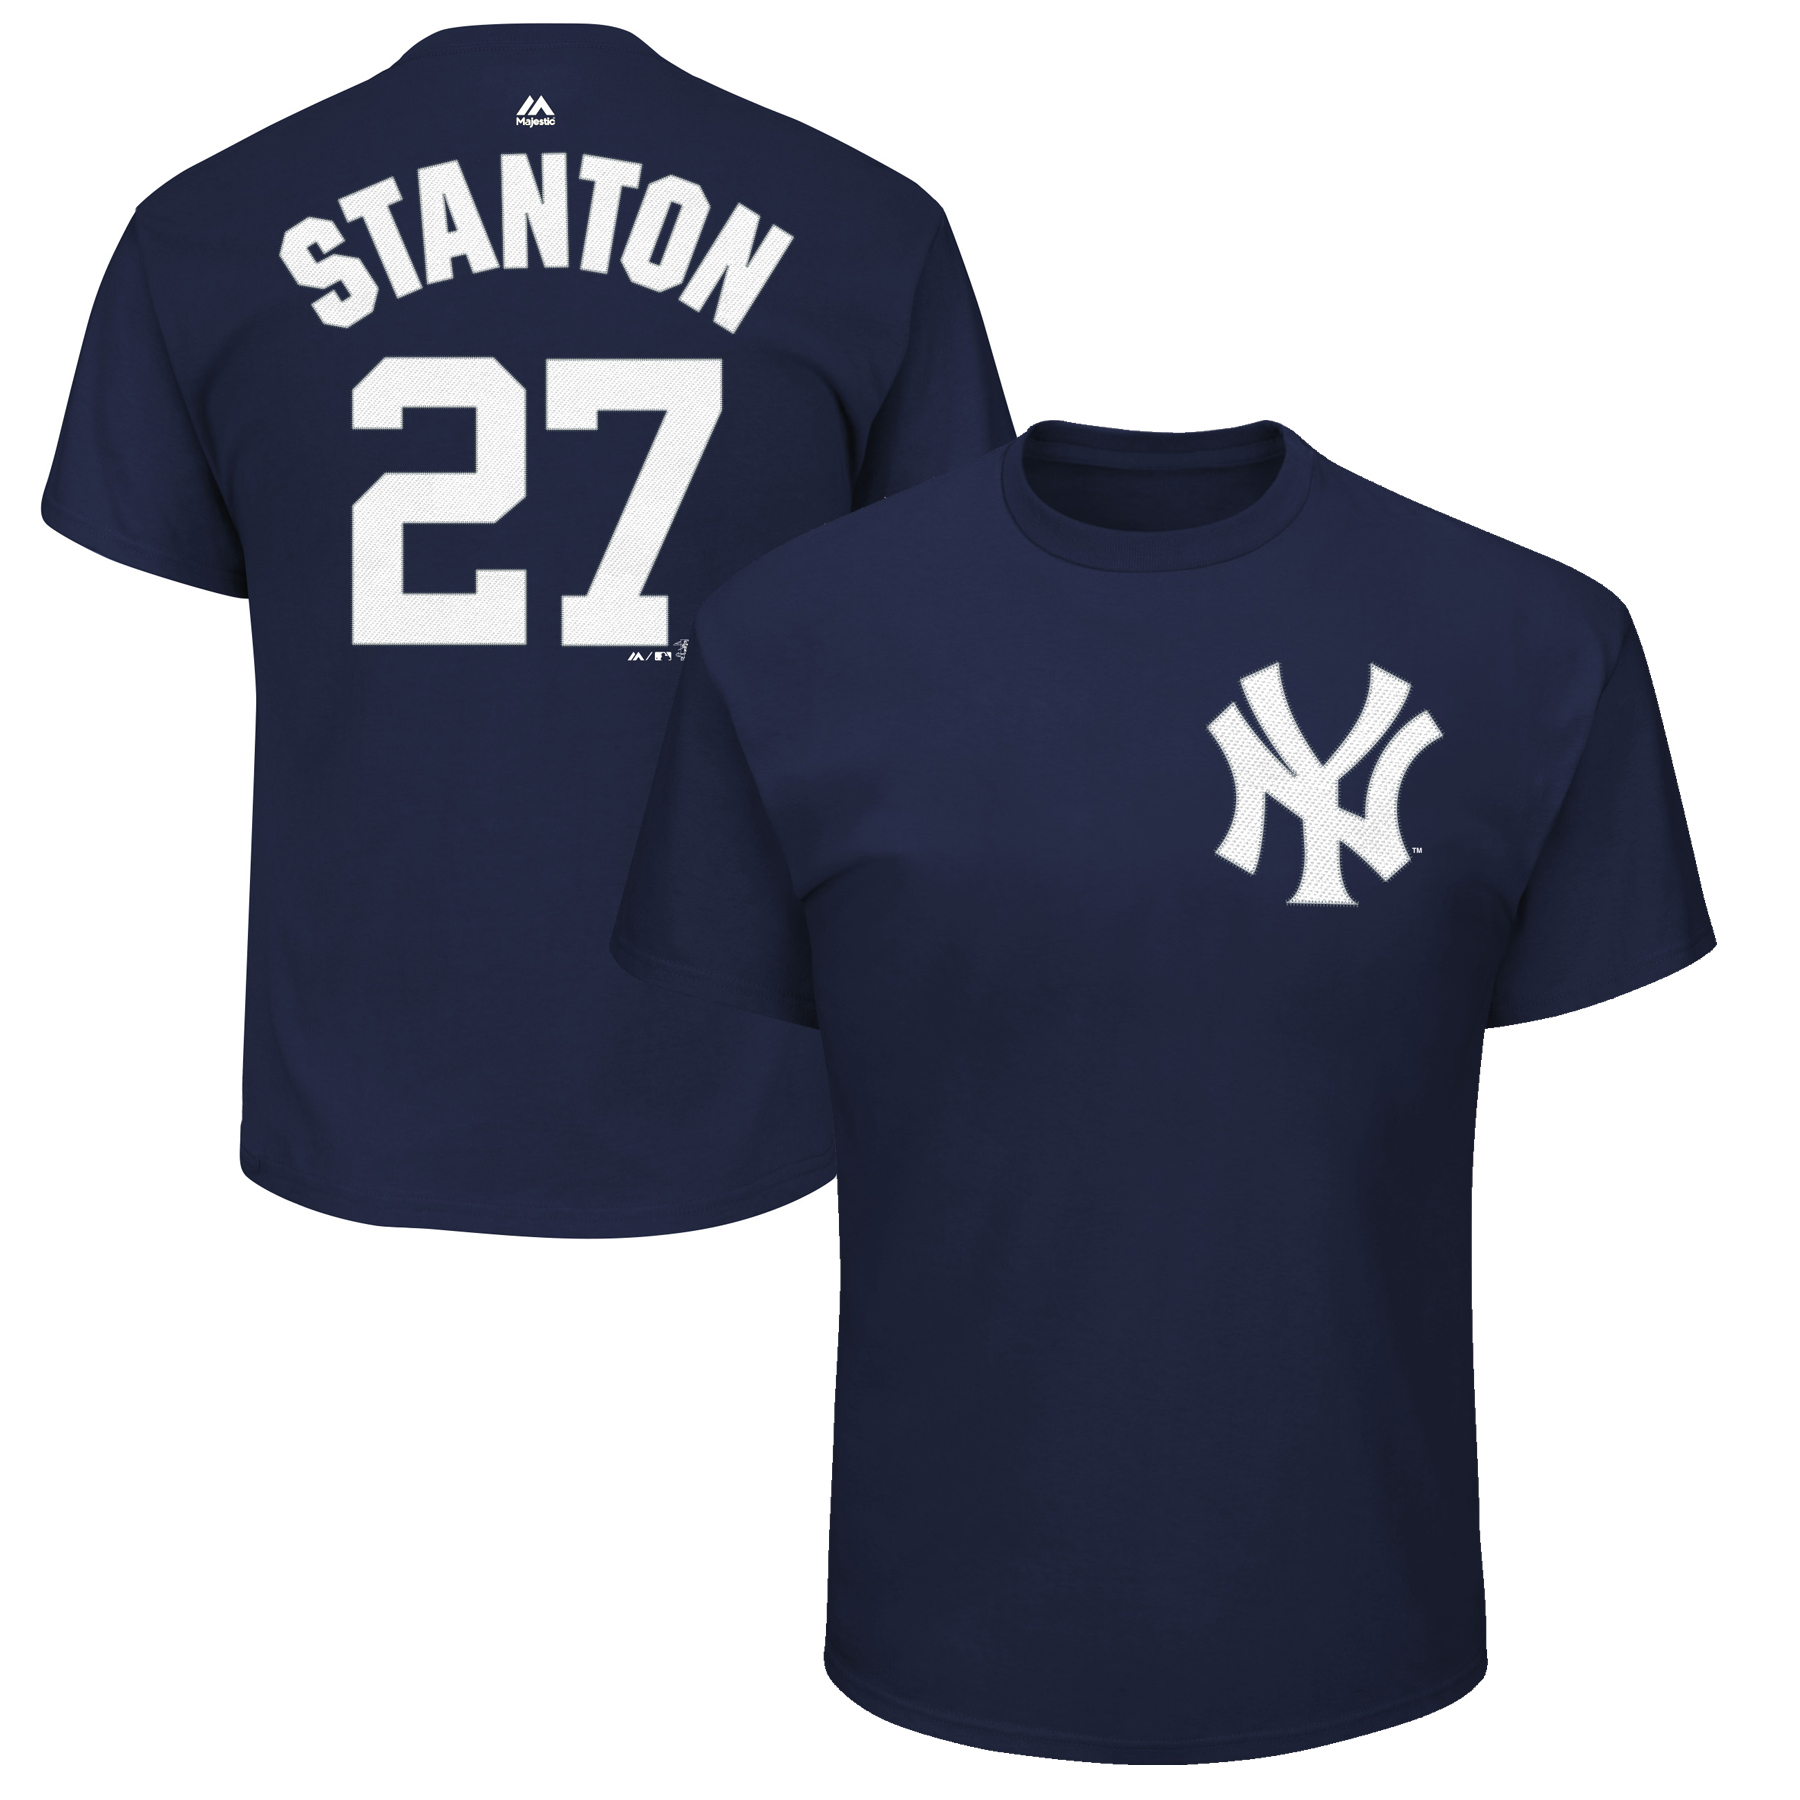 Giancarlo Stanton New York Yankees Majestic Name & Number T-Shirt - Navy